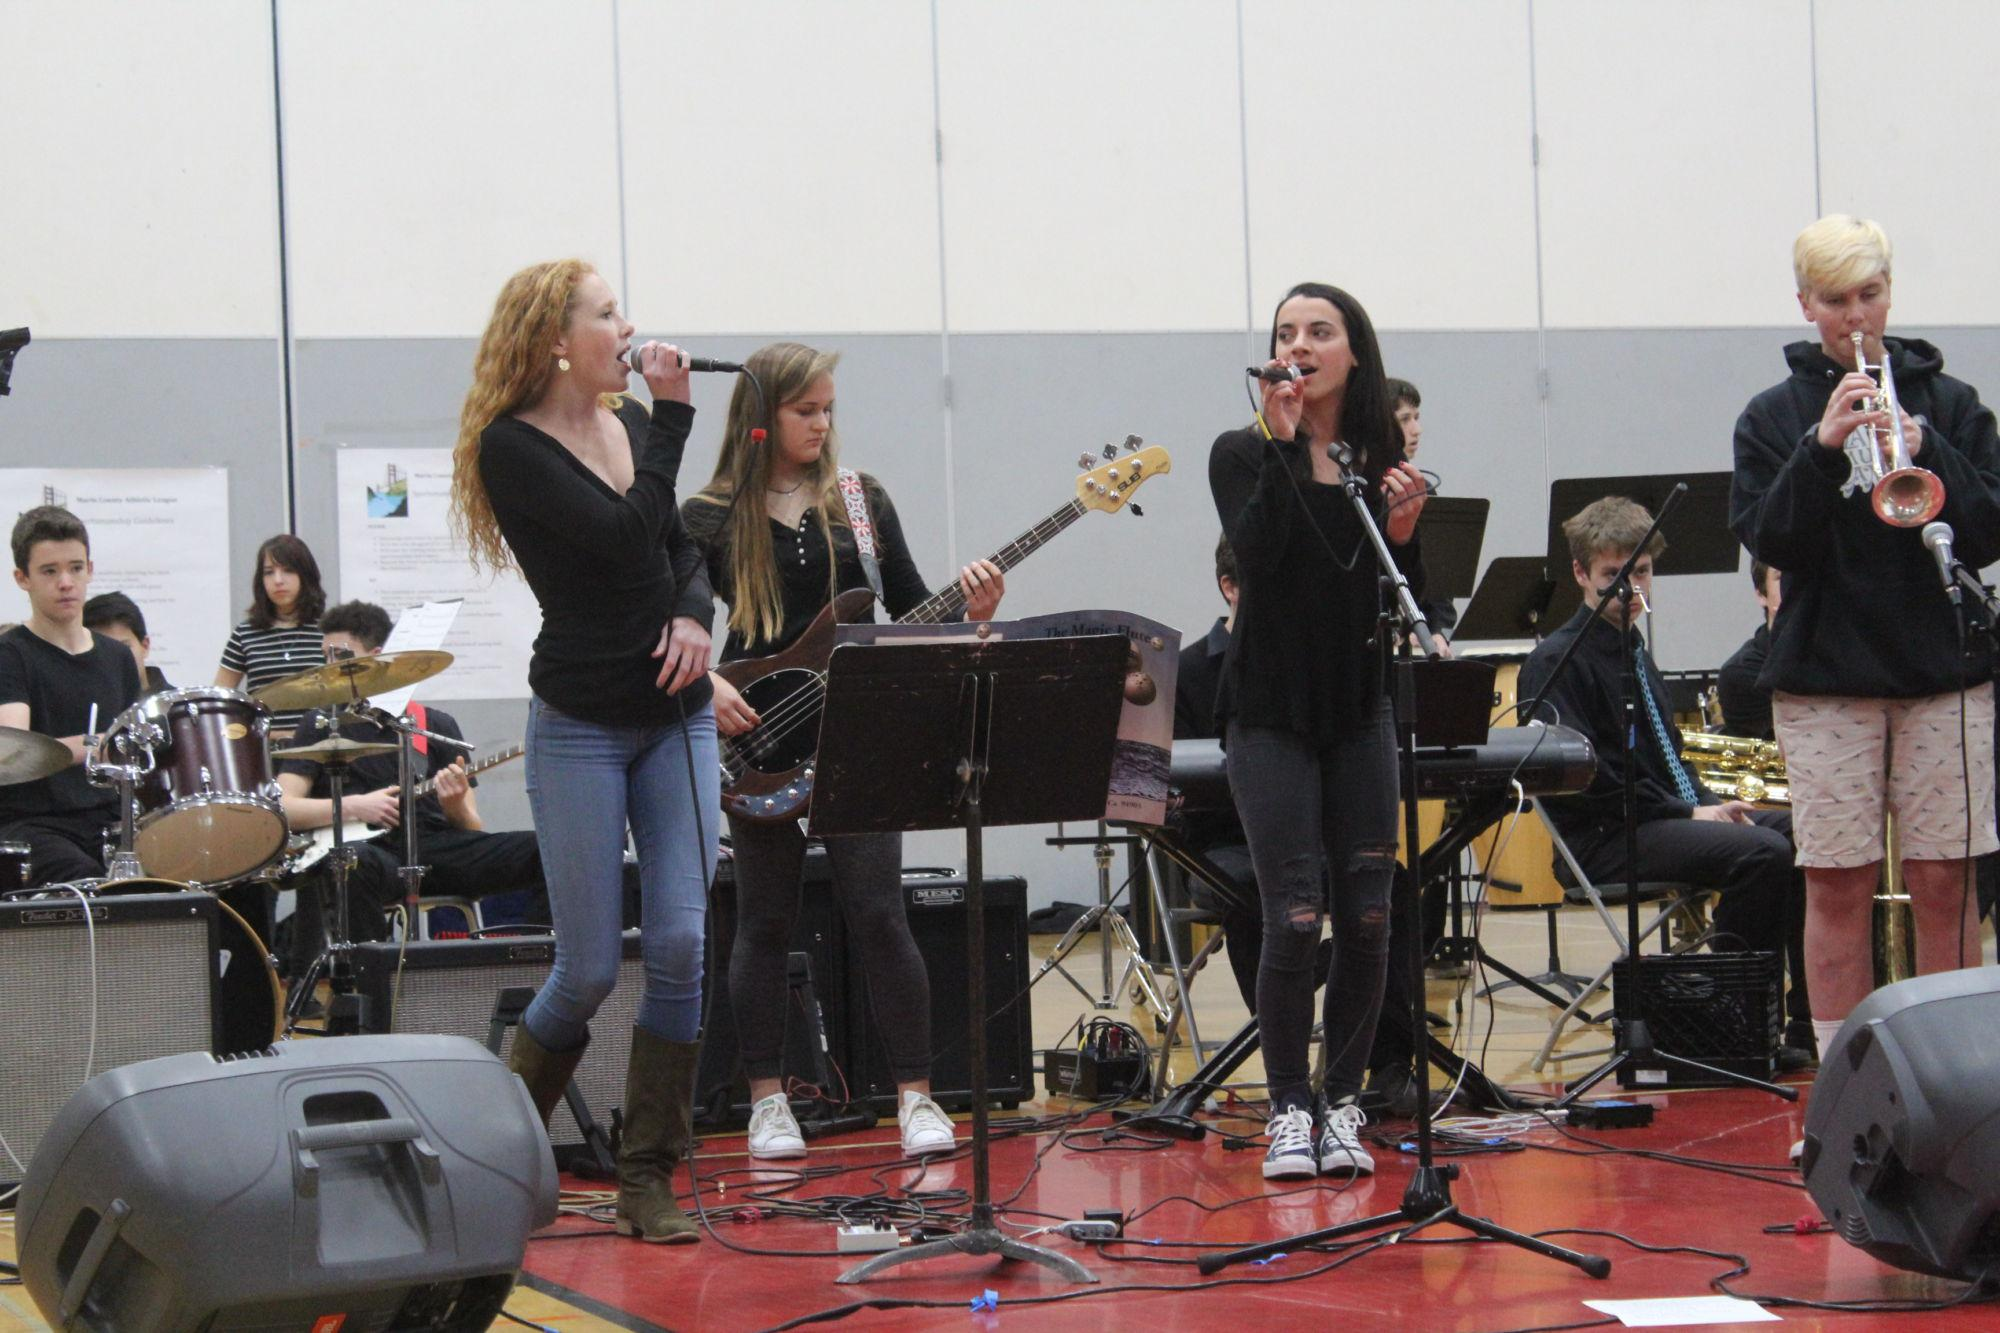 Senior+Bryte+Darden+and+junior+Hannah+Halford+perform+a+duet+during+last+Monday%E2%80%99s+advisory.%0A